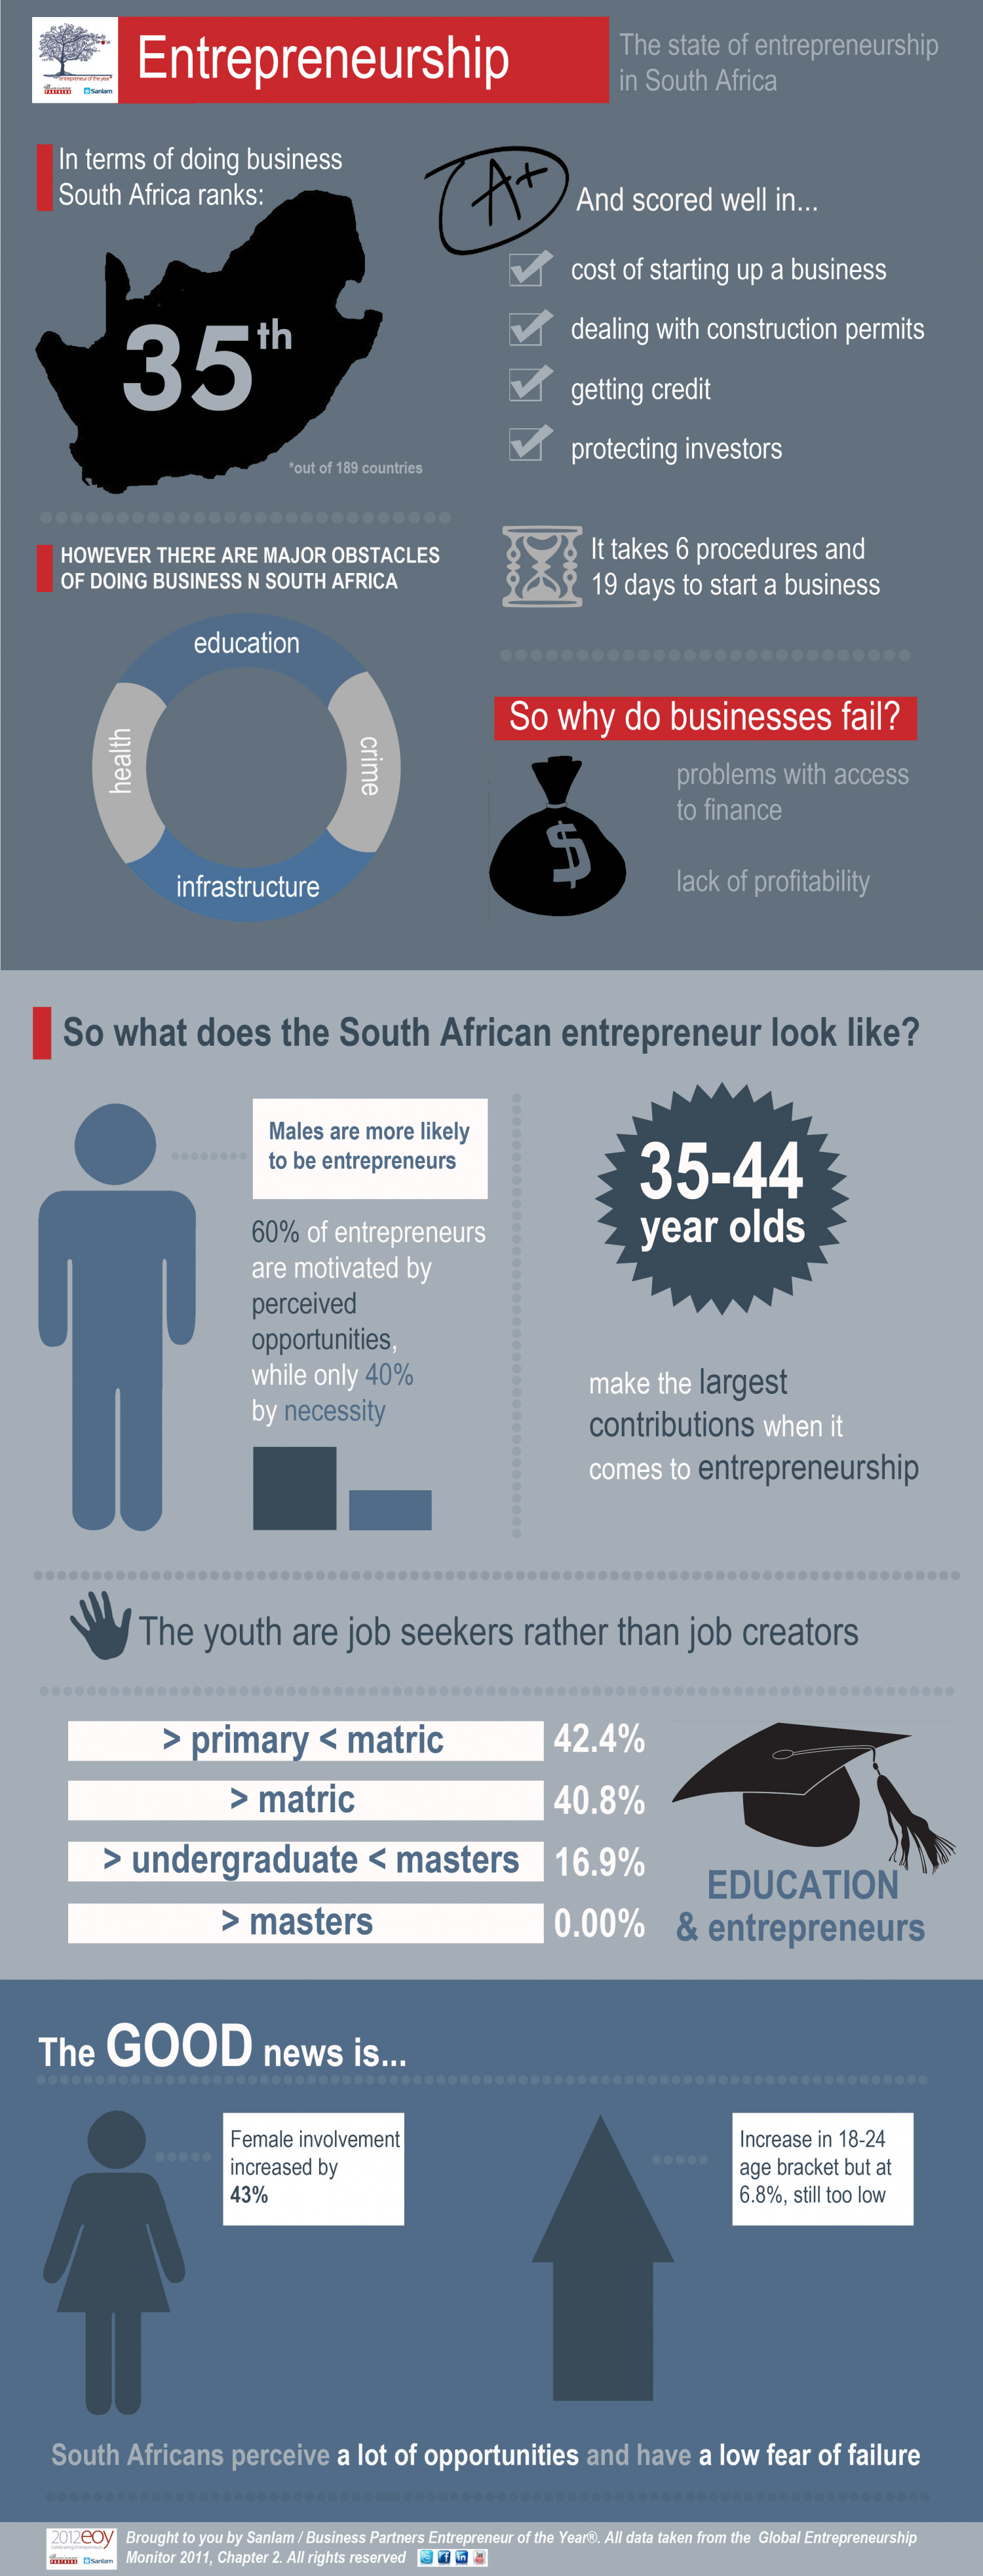 The State of Entrepreneurship in South Africa Infographic